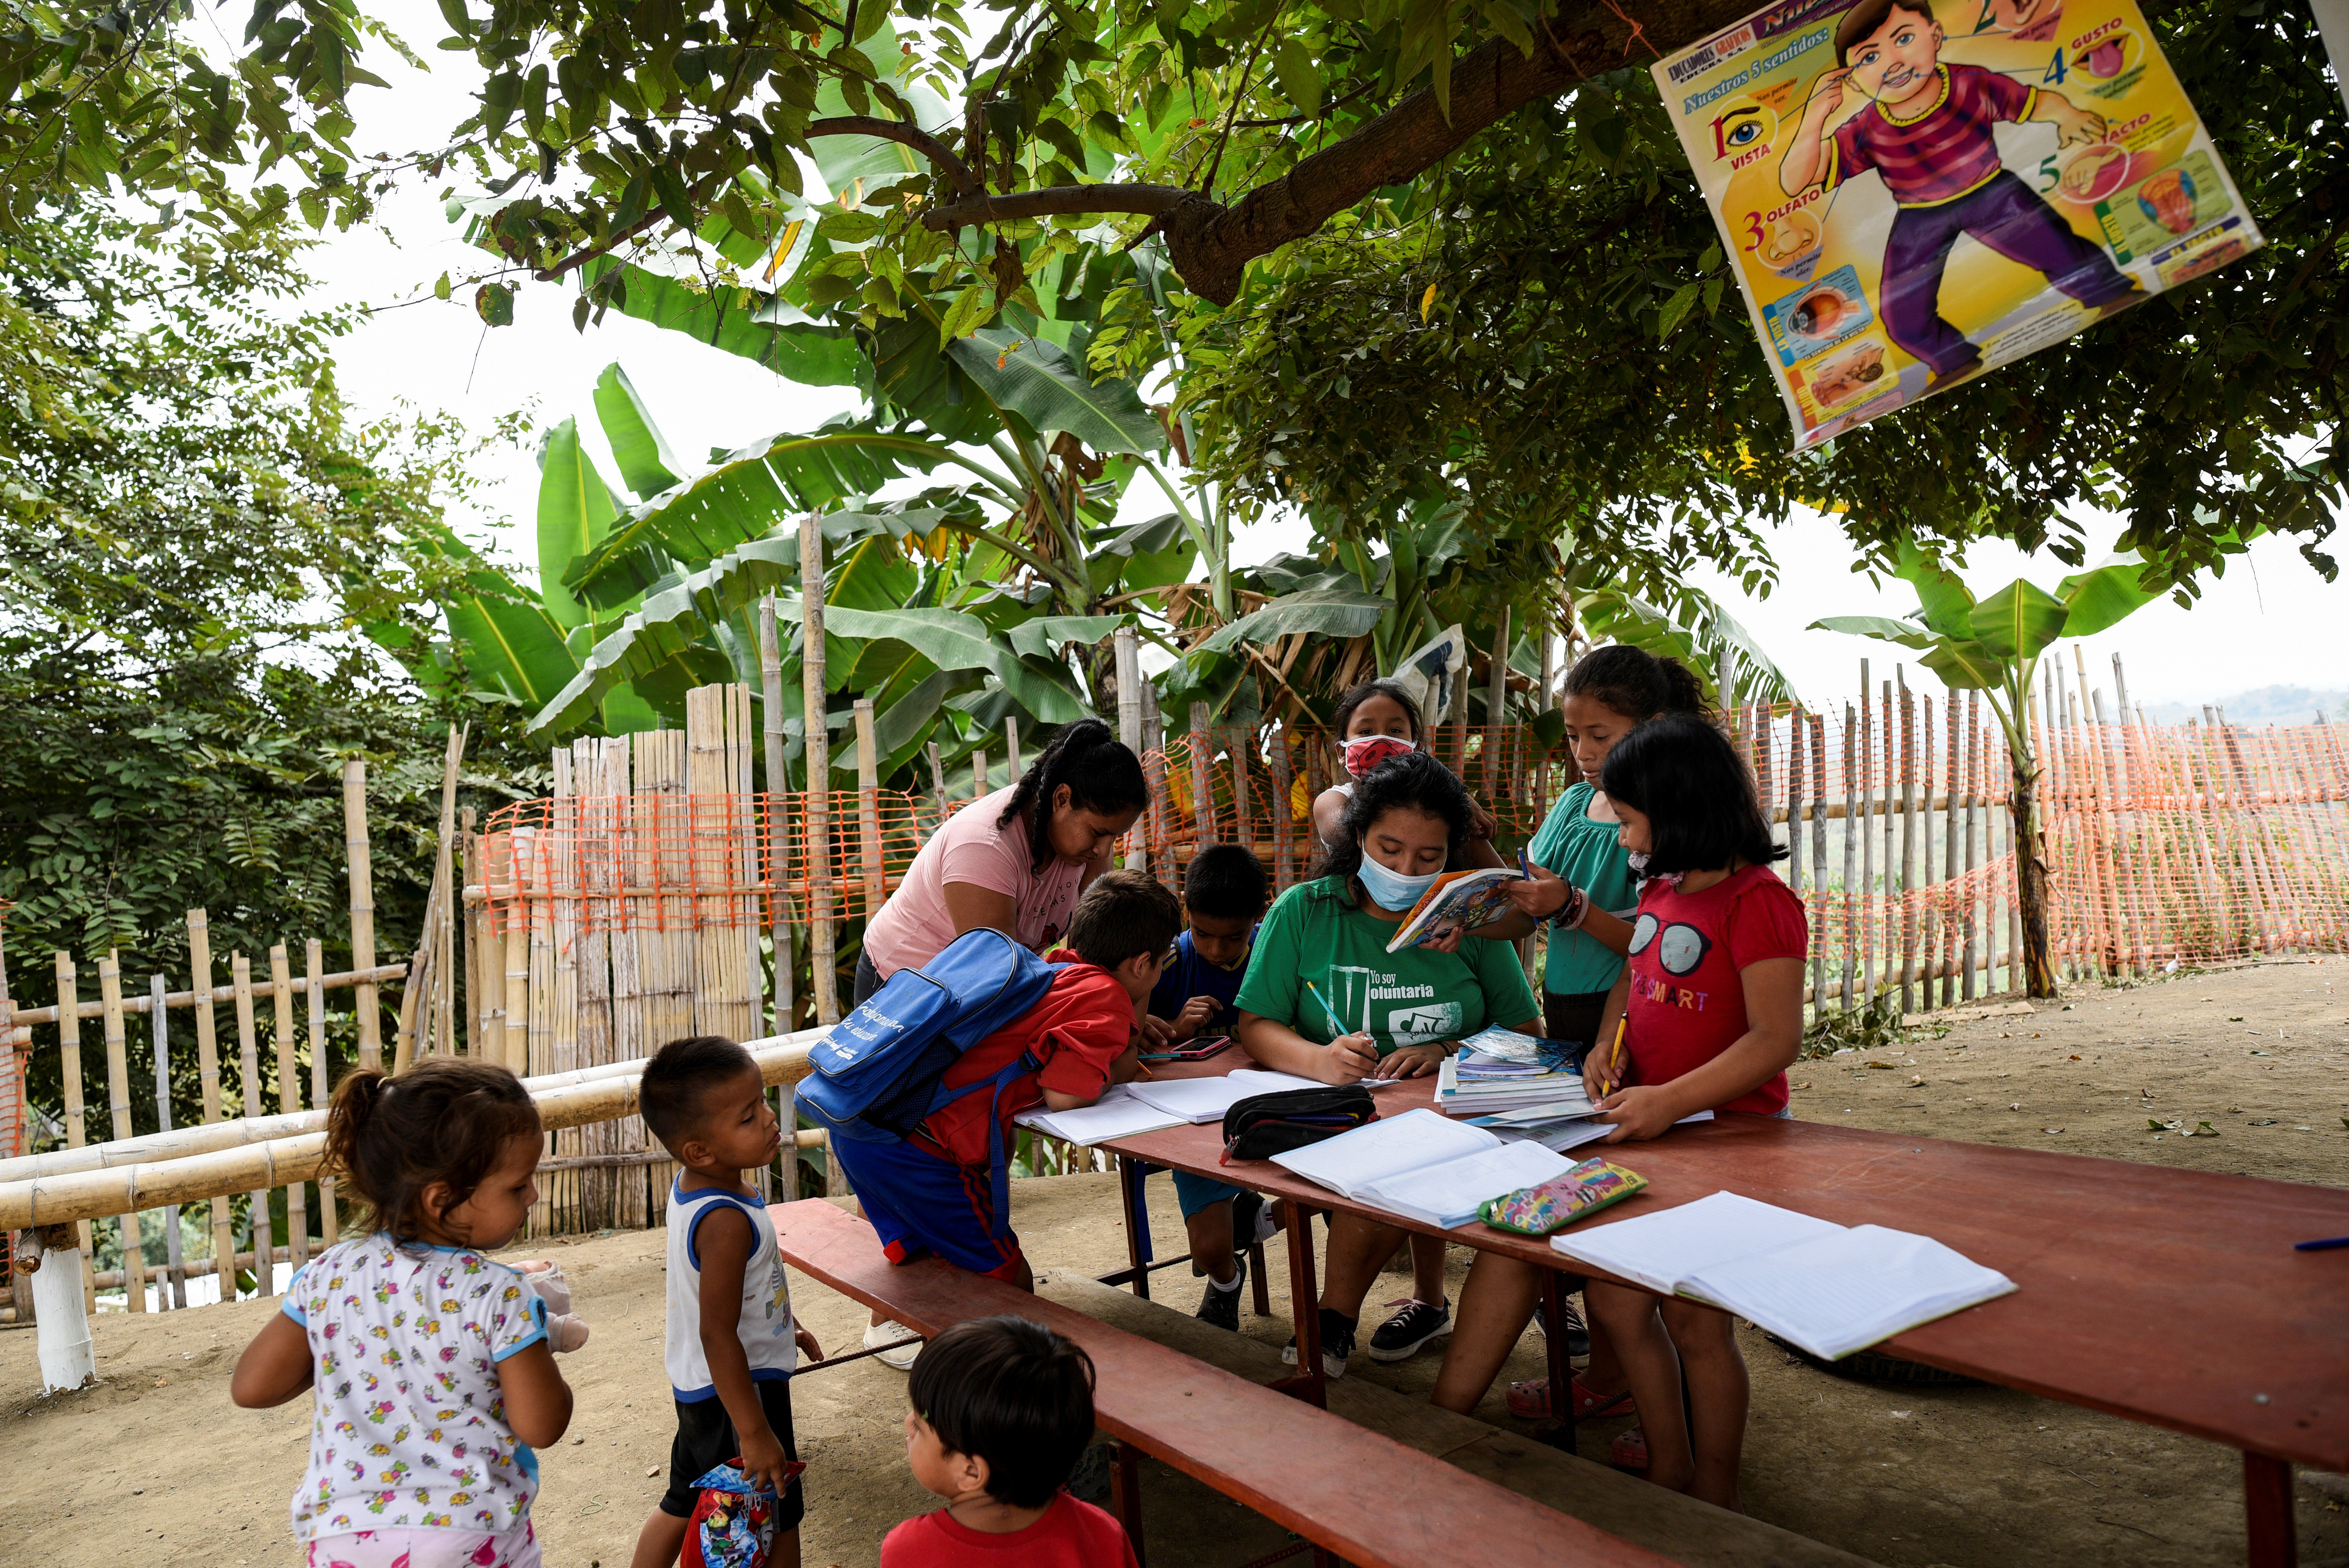 Denisse Toala (C), a 16-year-old student, teaches children in an improvised school she has set up under a tree since they have been unable to attend virtual classes in the low-income neighbourhood Realidad de Dios, during the outbreak of the coronavirus disease (COVID-19), in Guayaquil, Ecuador July 2, 2020. Picture taken July 2, 2020. REUTERS/Santiago Arcos - RC26TH9RALAO